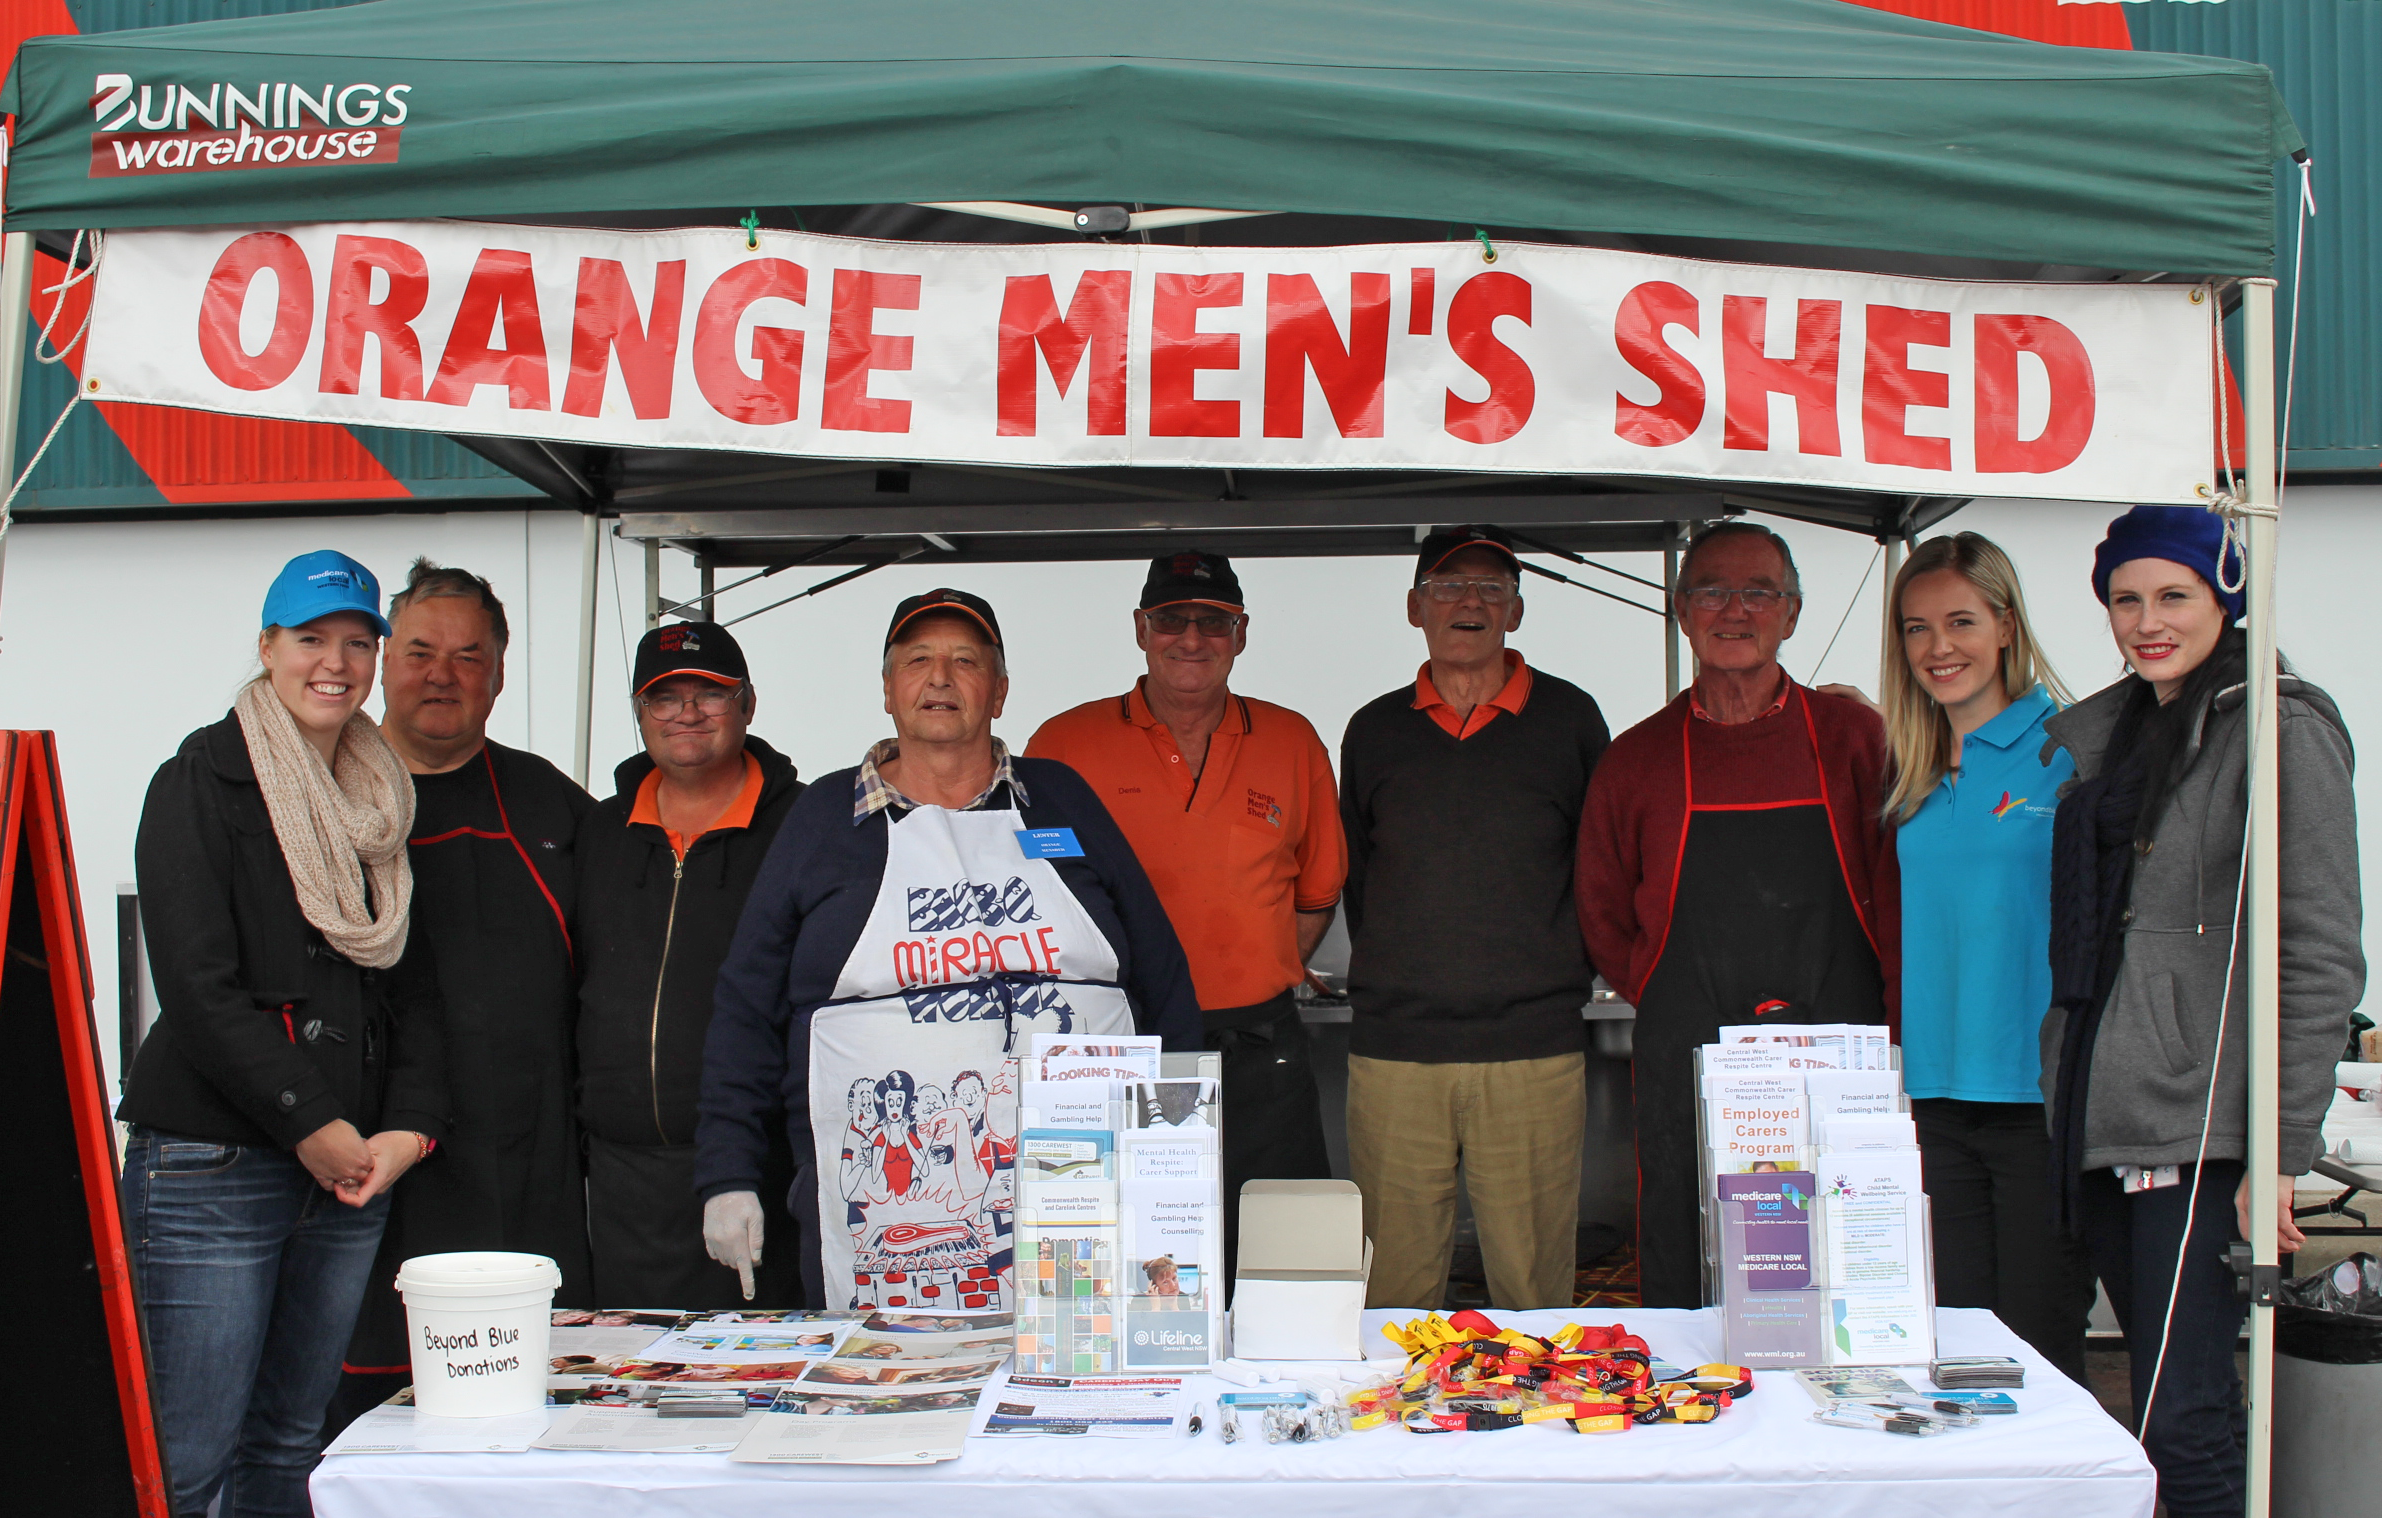 Members of the Orange Men's Shed cooked up a great barbecue.